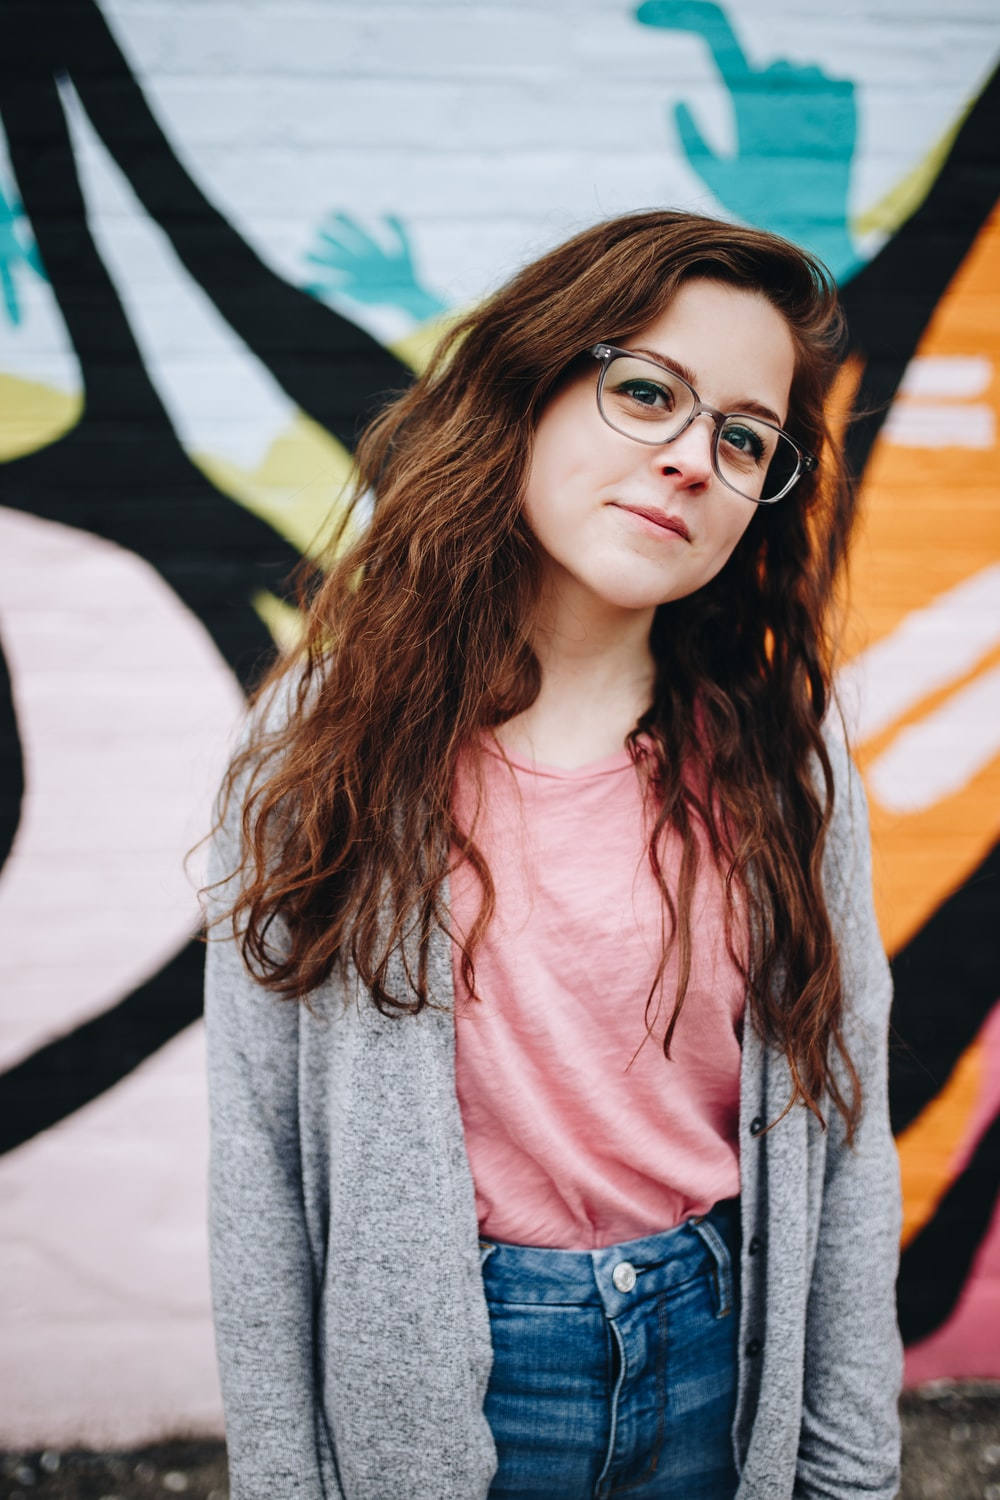 girl wearing eyeglasses with silver frames behind graffiti